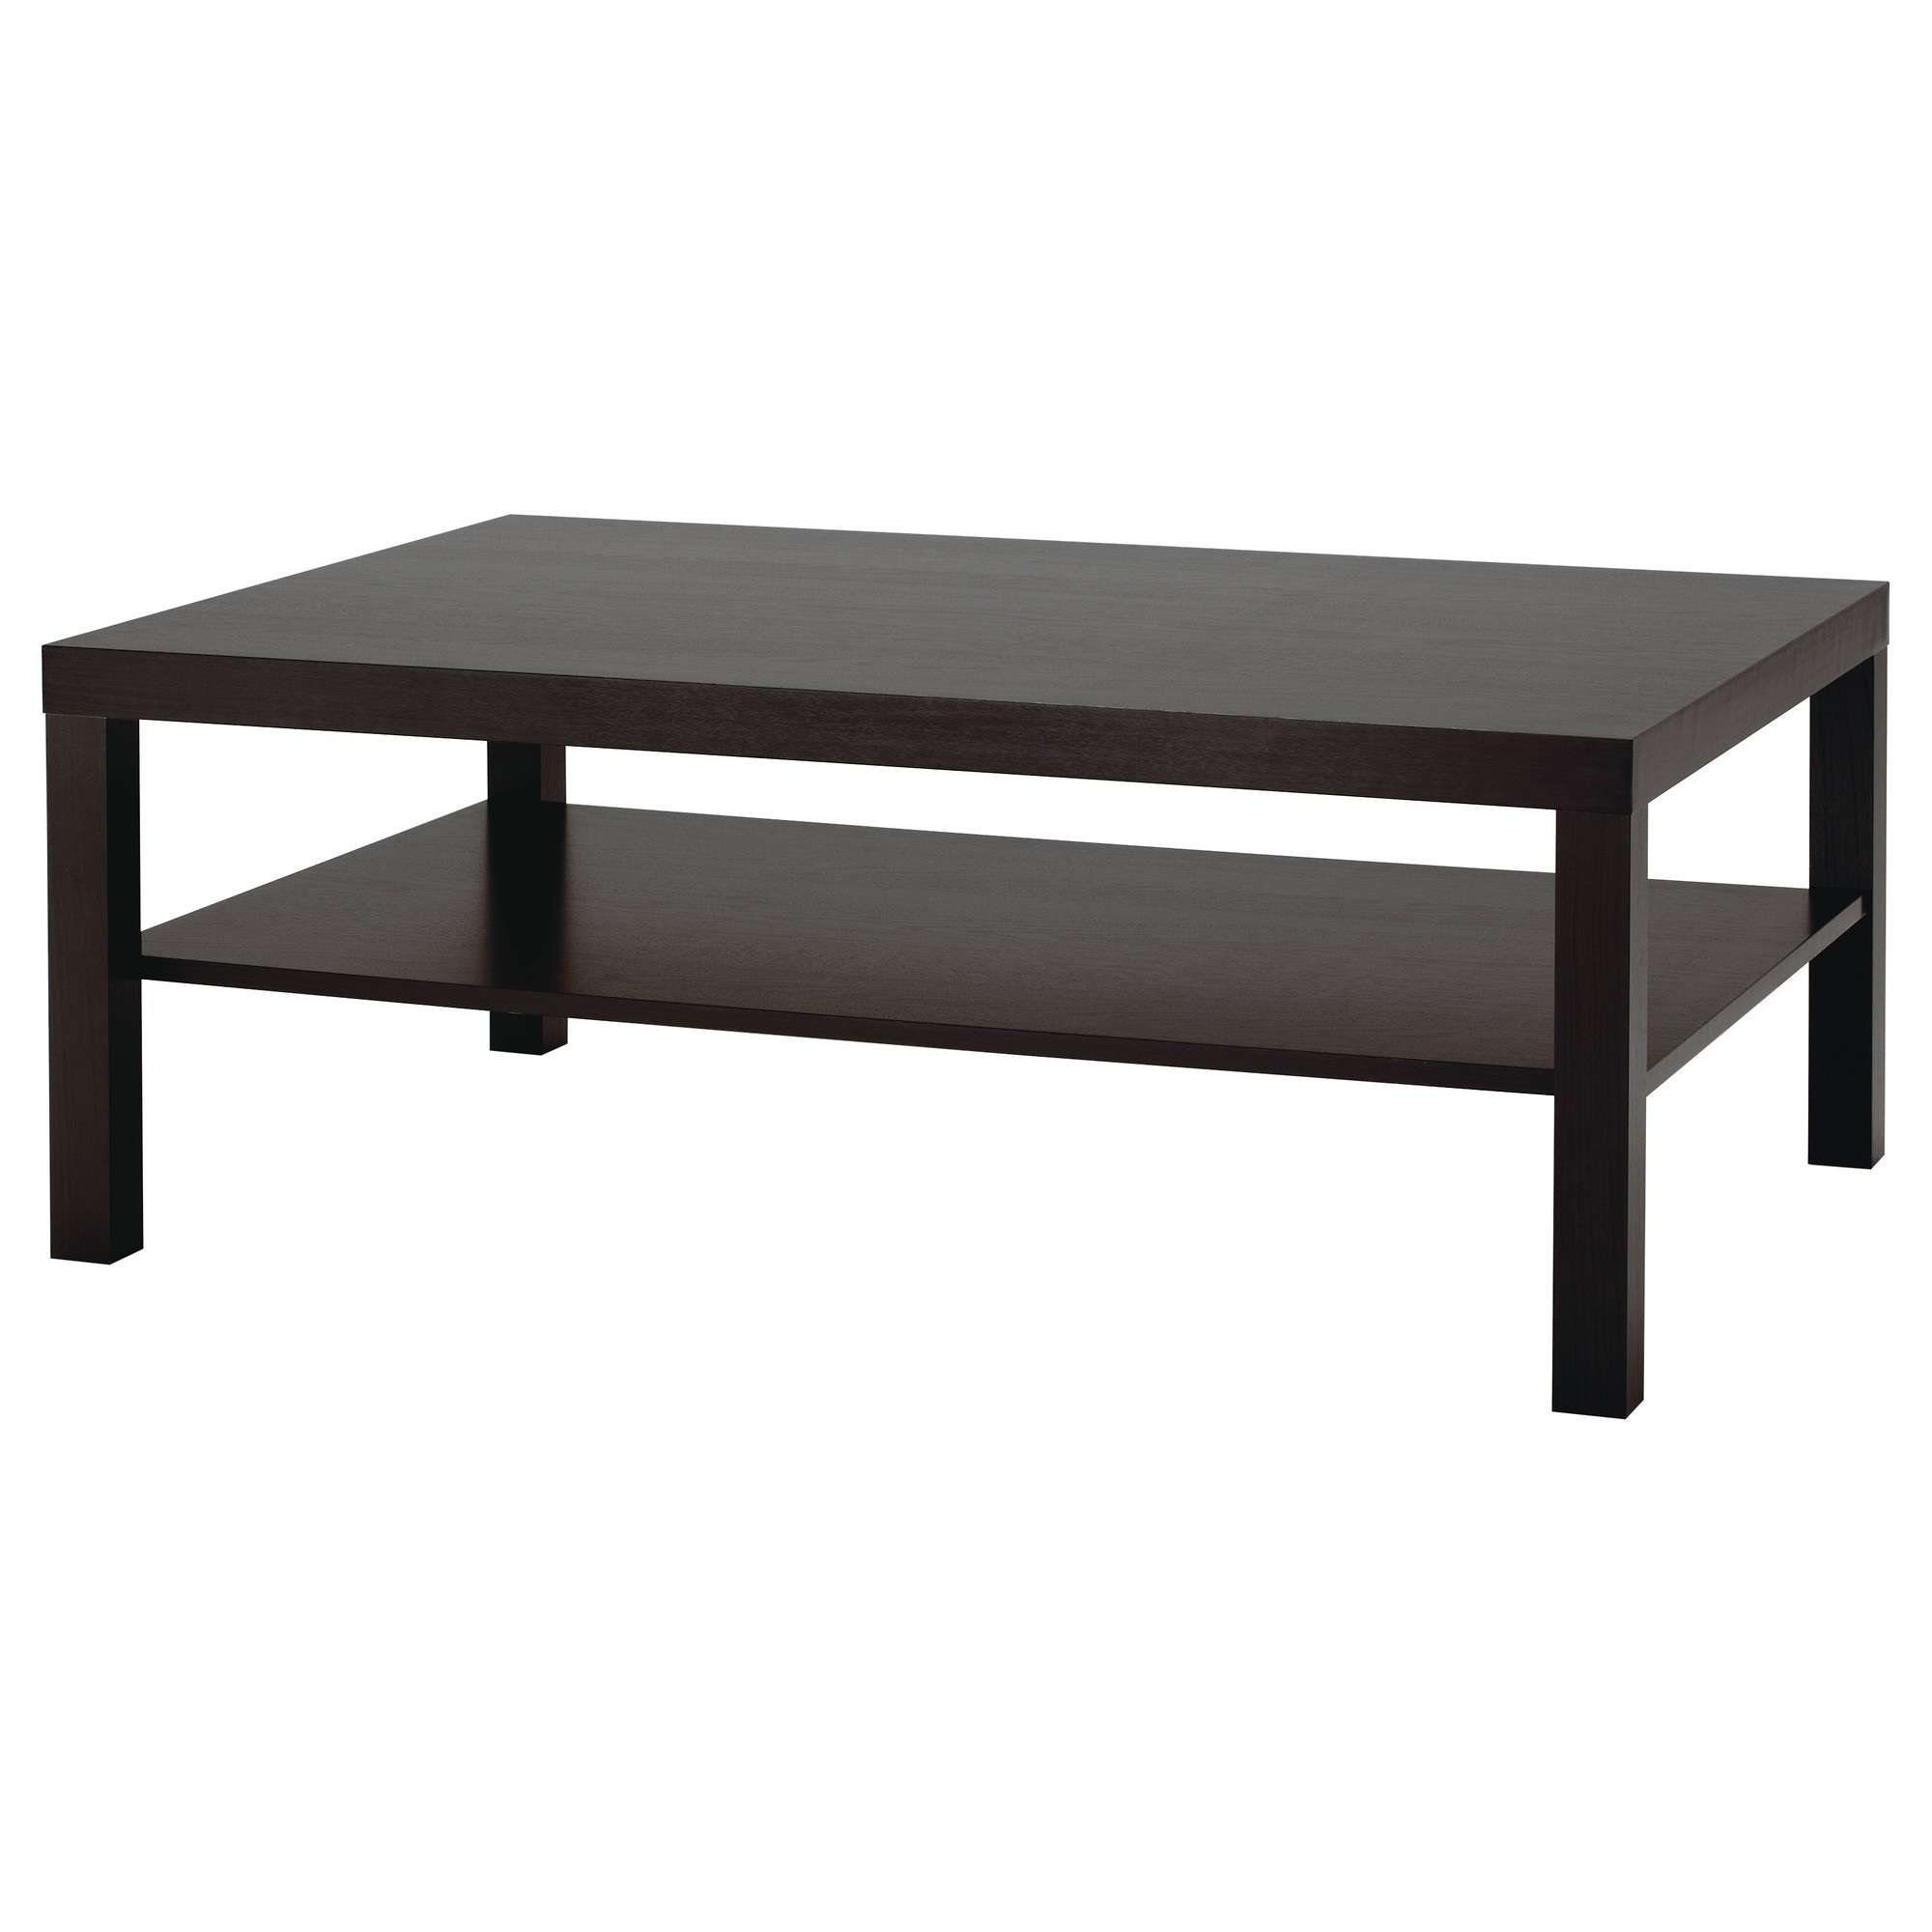 Trendy Low Glass Coffee Tables Pertaining To Coffee Tables : Low Height Coffee Table Small Designs Silver Clear (View 19 of 20)